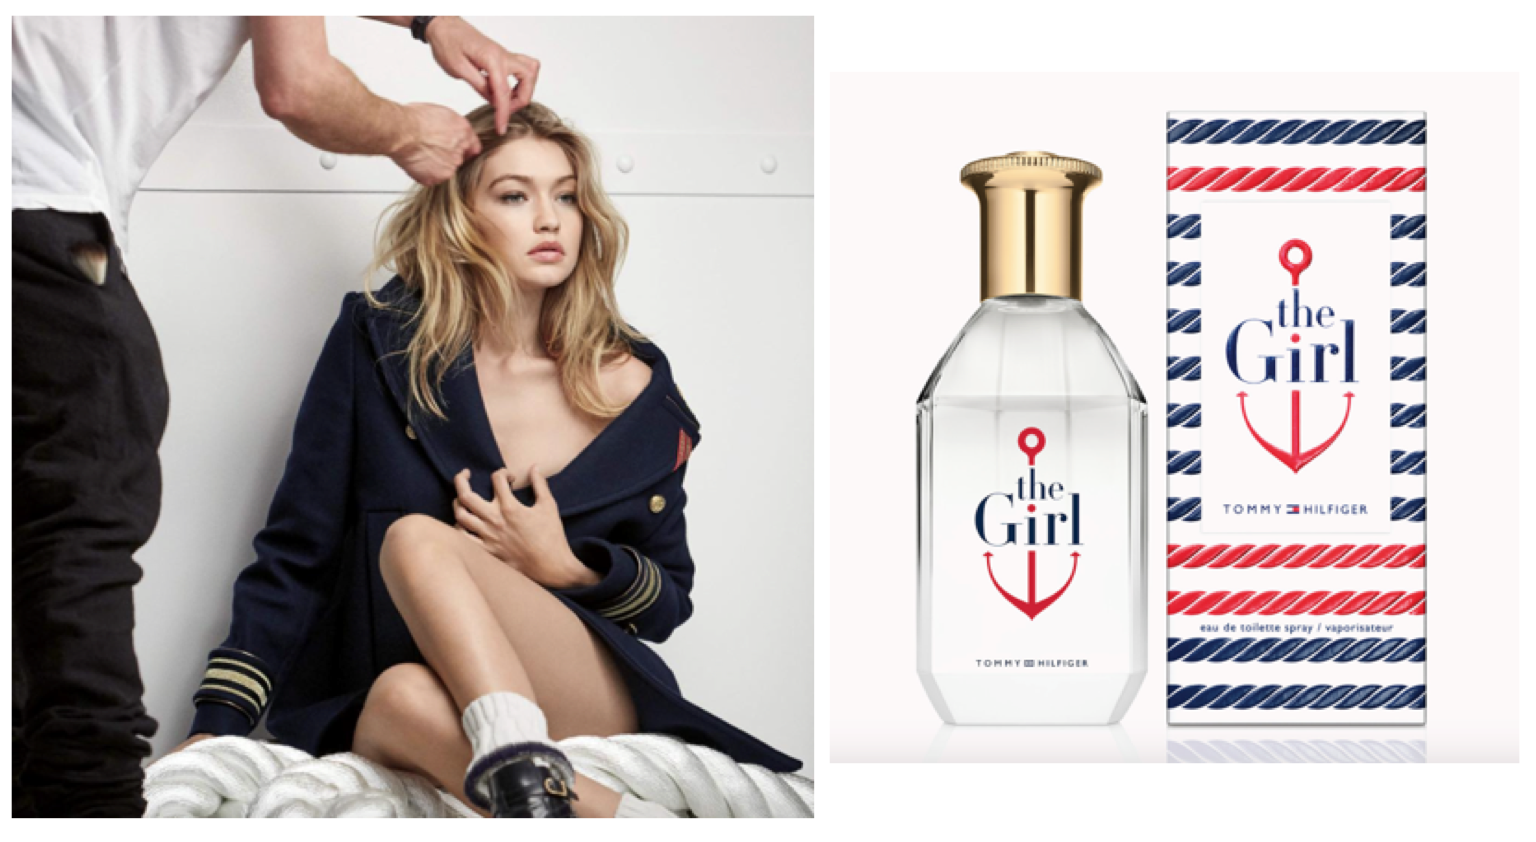 27f842a8cdcfcb Screen Shot 2016-07-22 at 13.14.03. Gigi behind the scenes with Tommy  Hilfiger's new fragrance, The Girl.